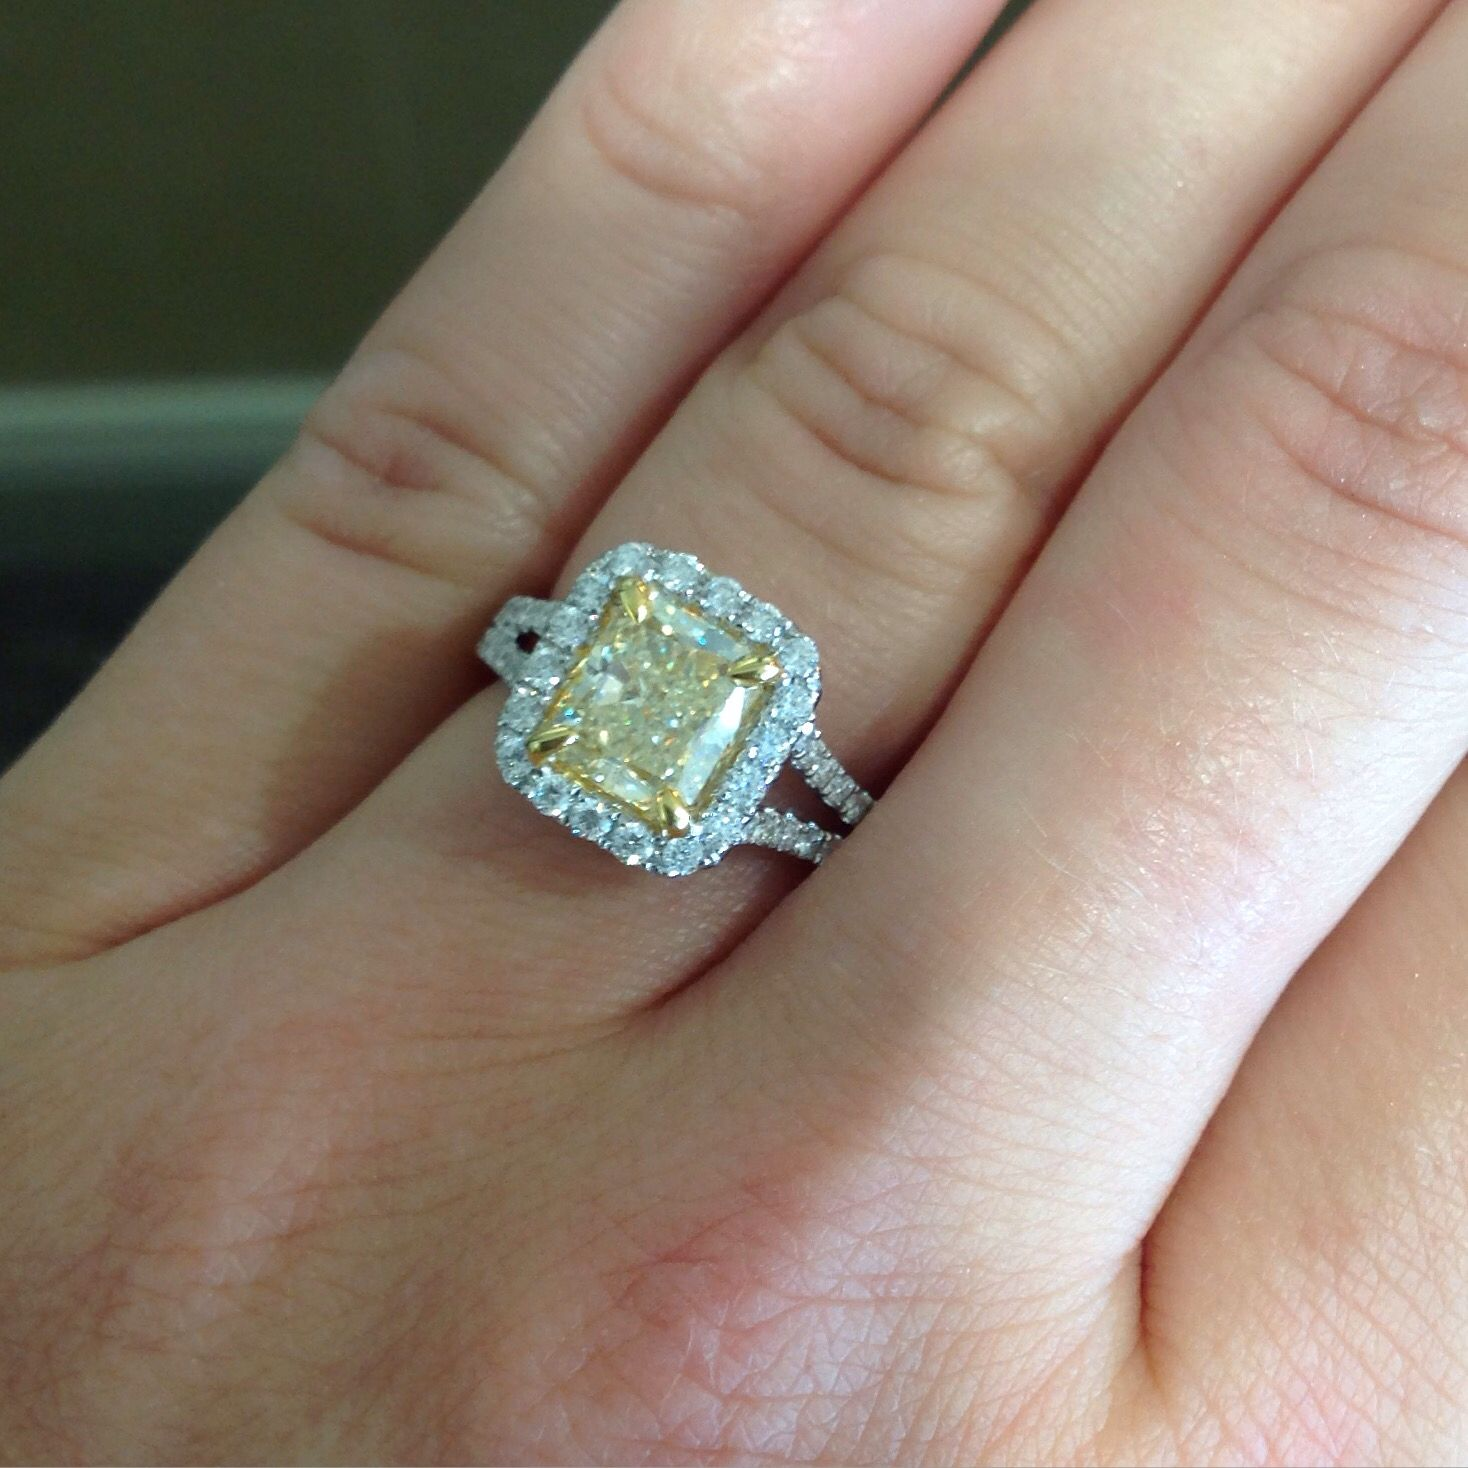 This 2 carat canary yellow cushion cut diamond ring is a stunner